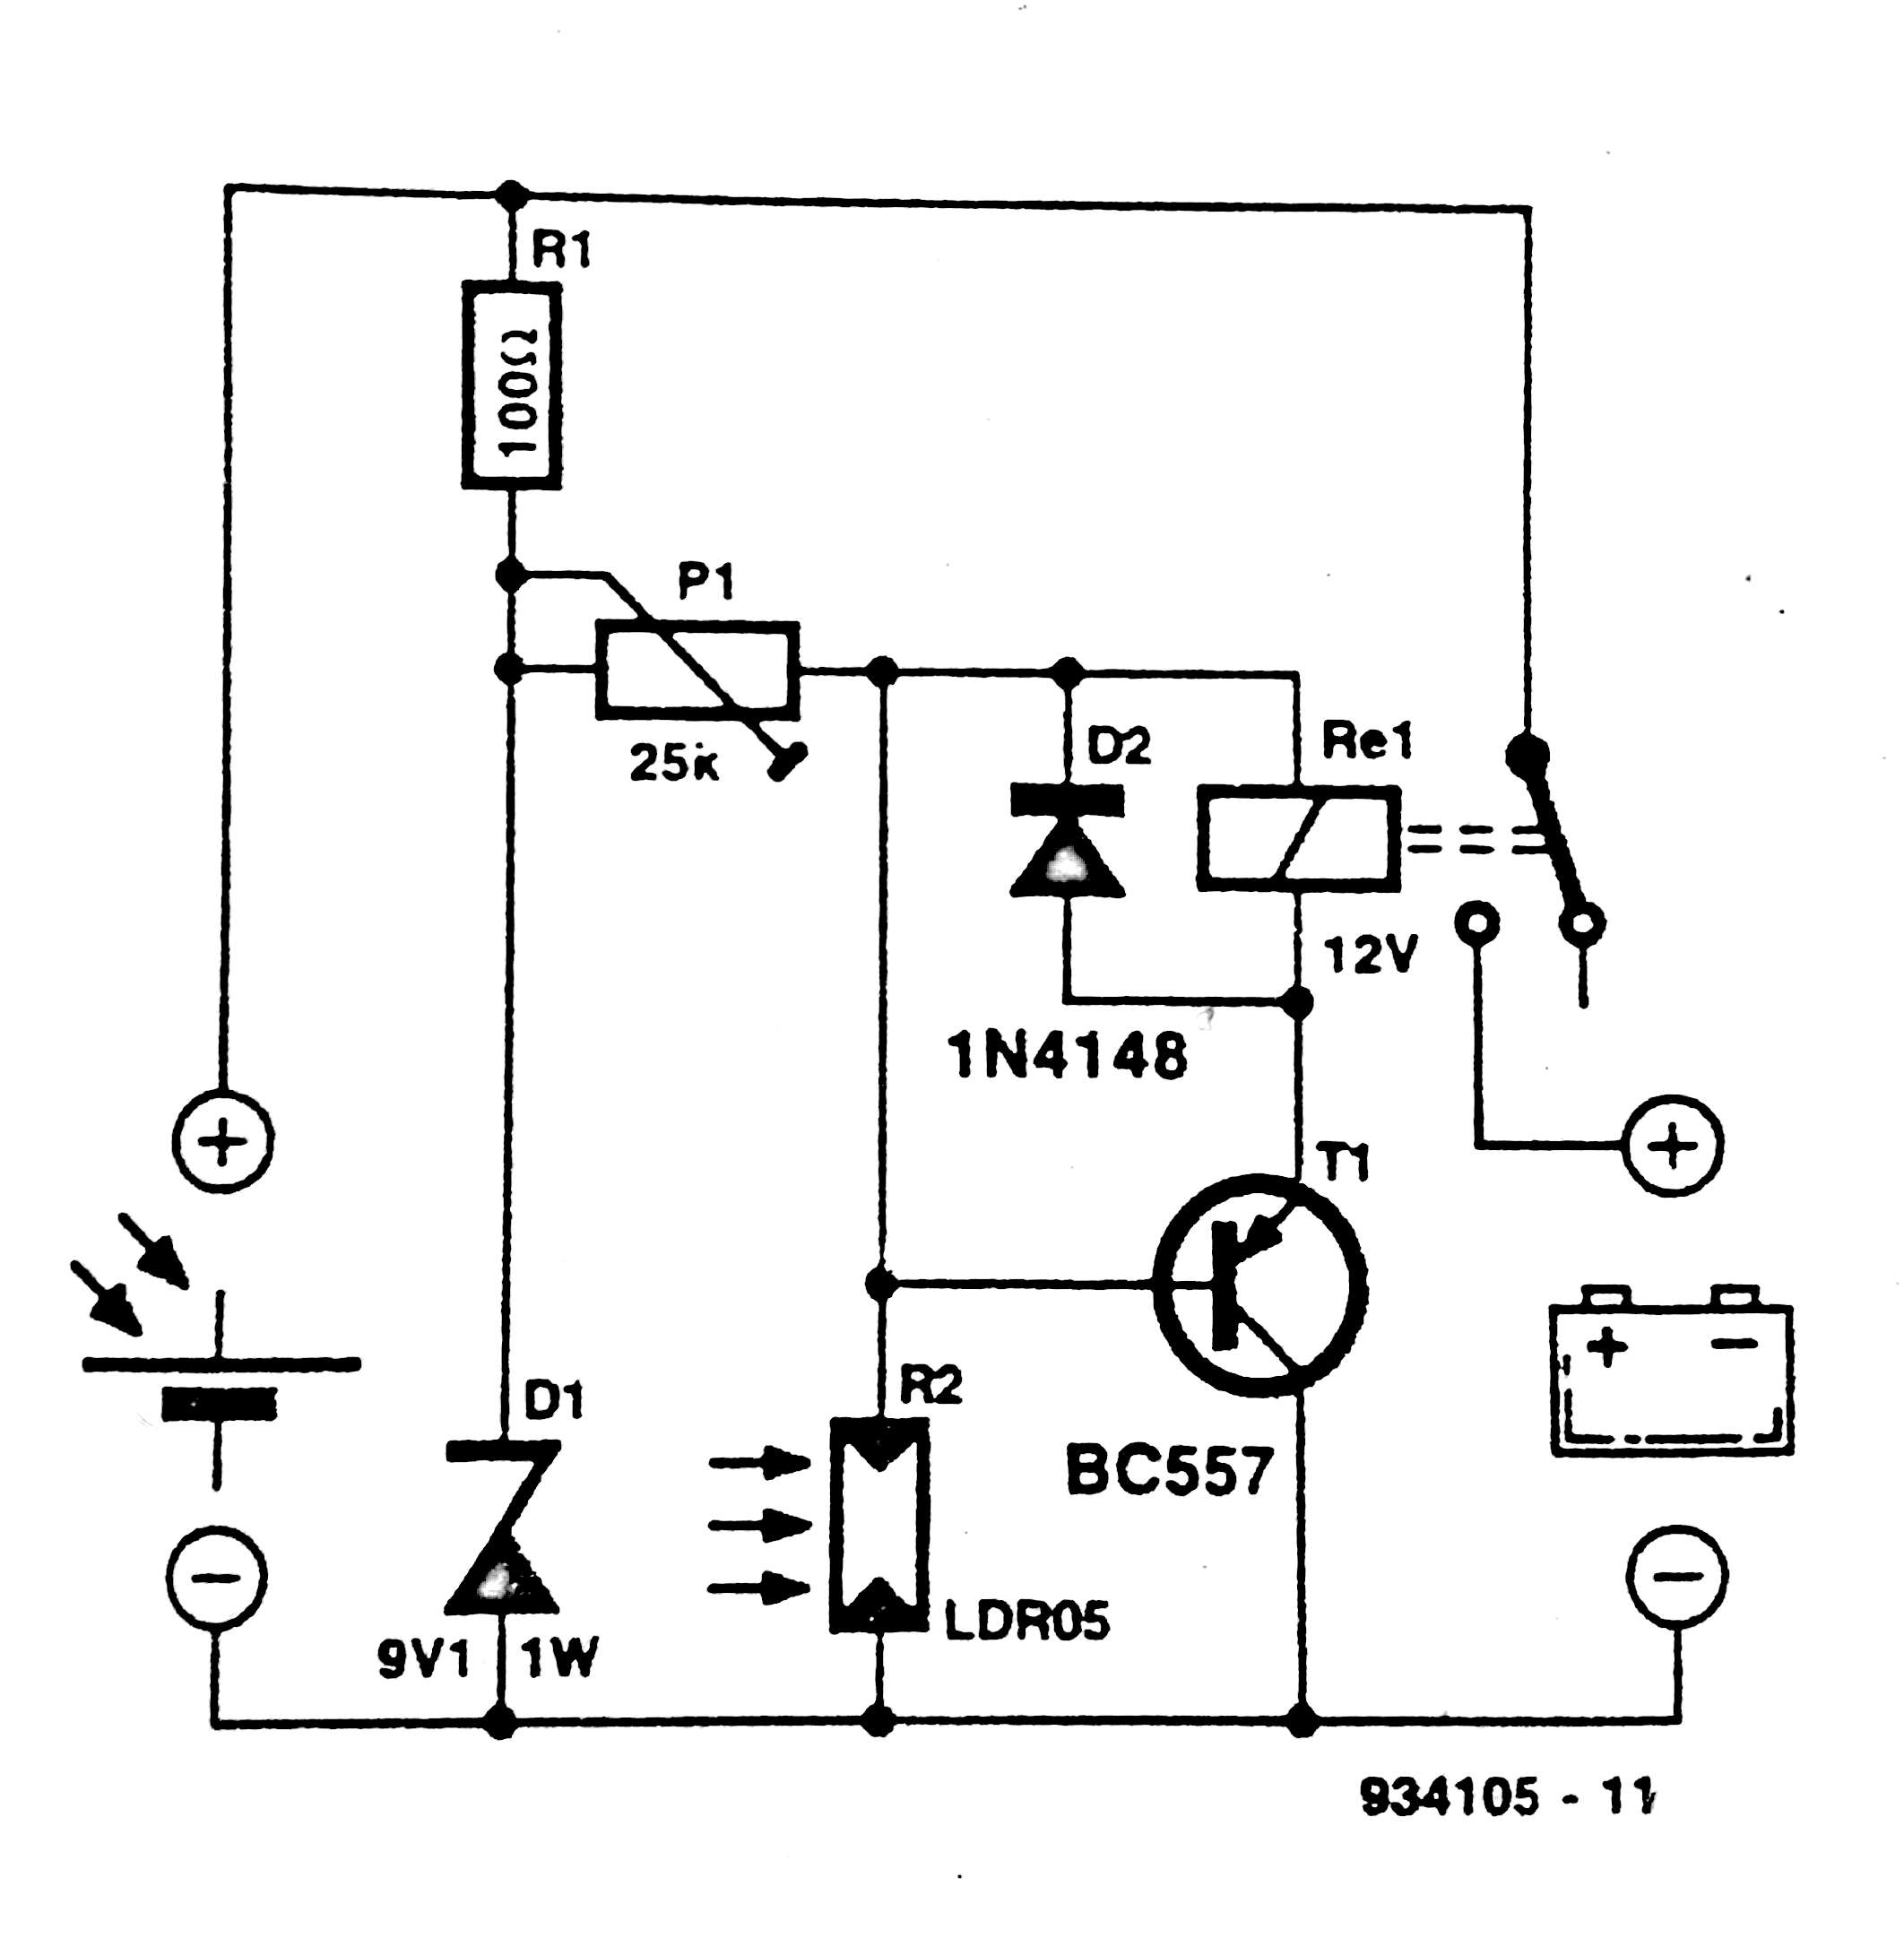 wiring diagram for solar panel to battery chevy blazer charging rechargeable batteries robot room